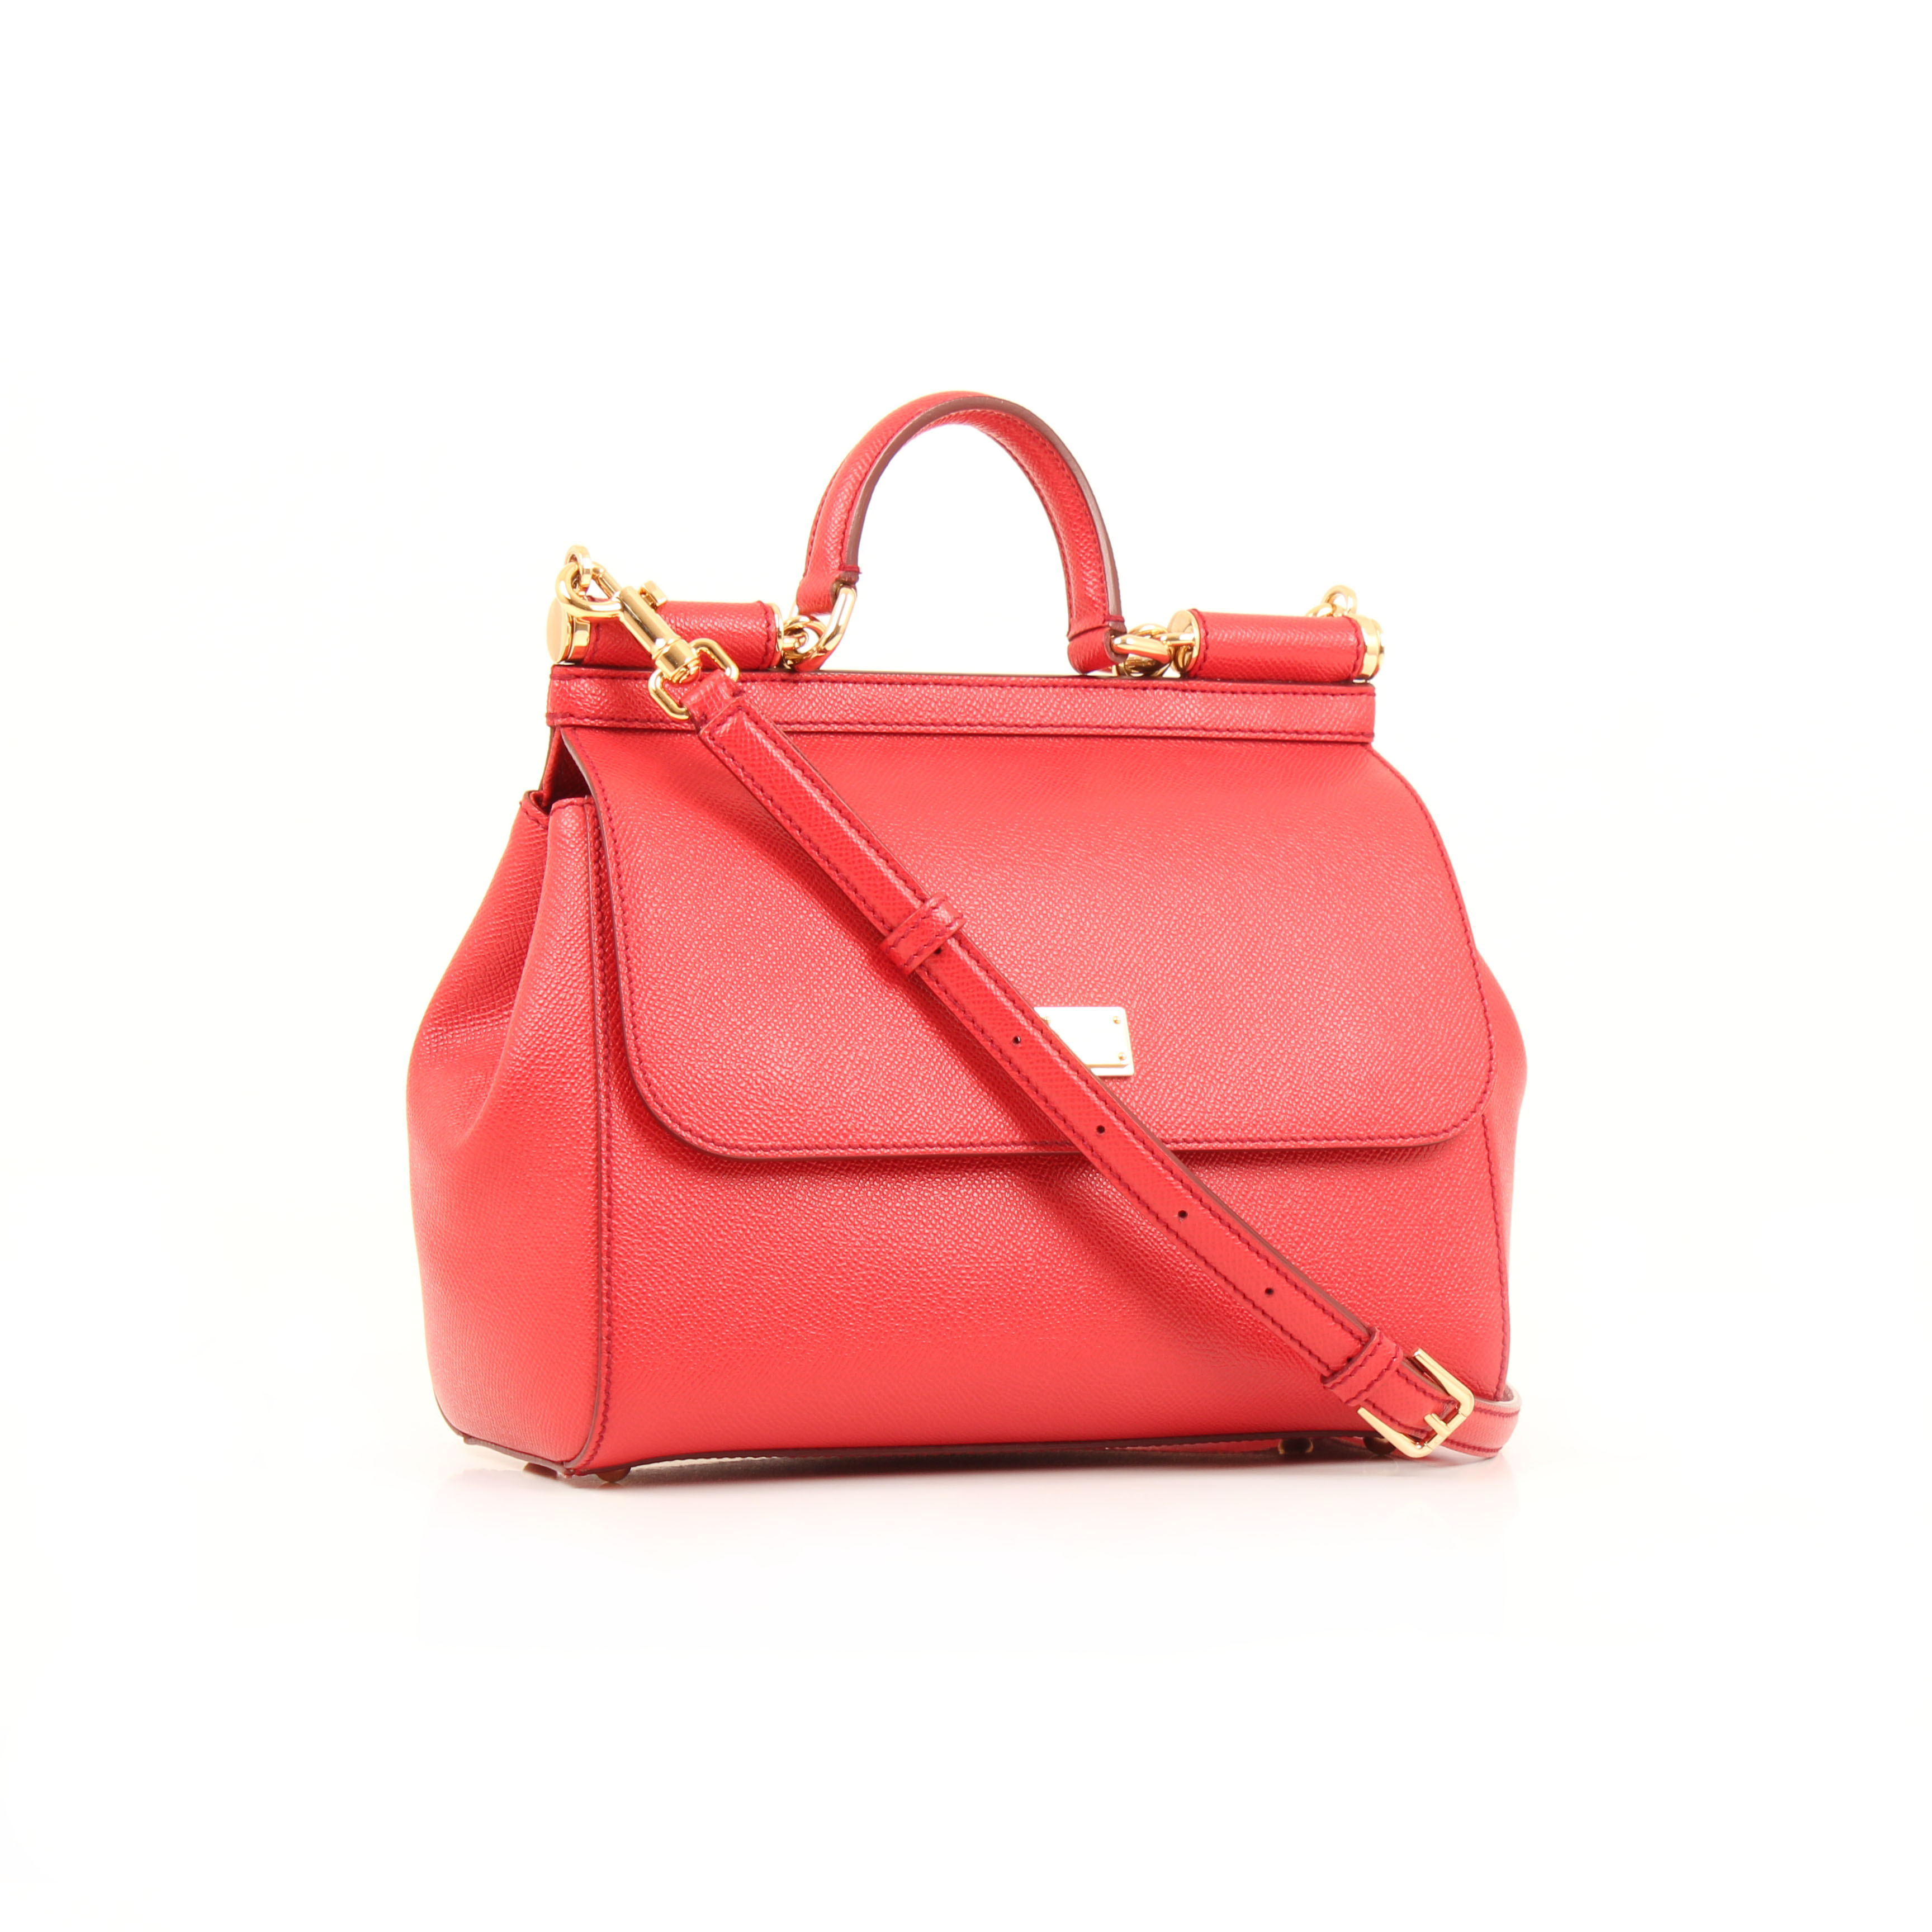 19abe4ad4f67 dolce gabbana sicily bag red grained leather general